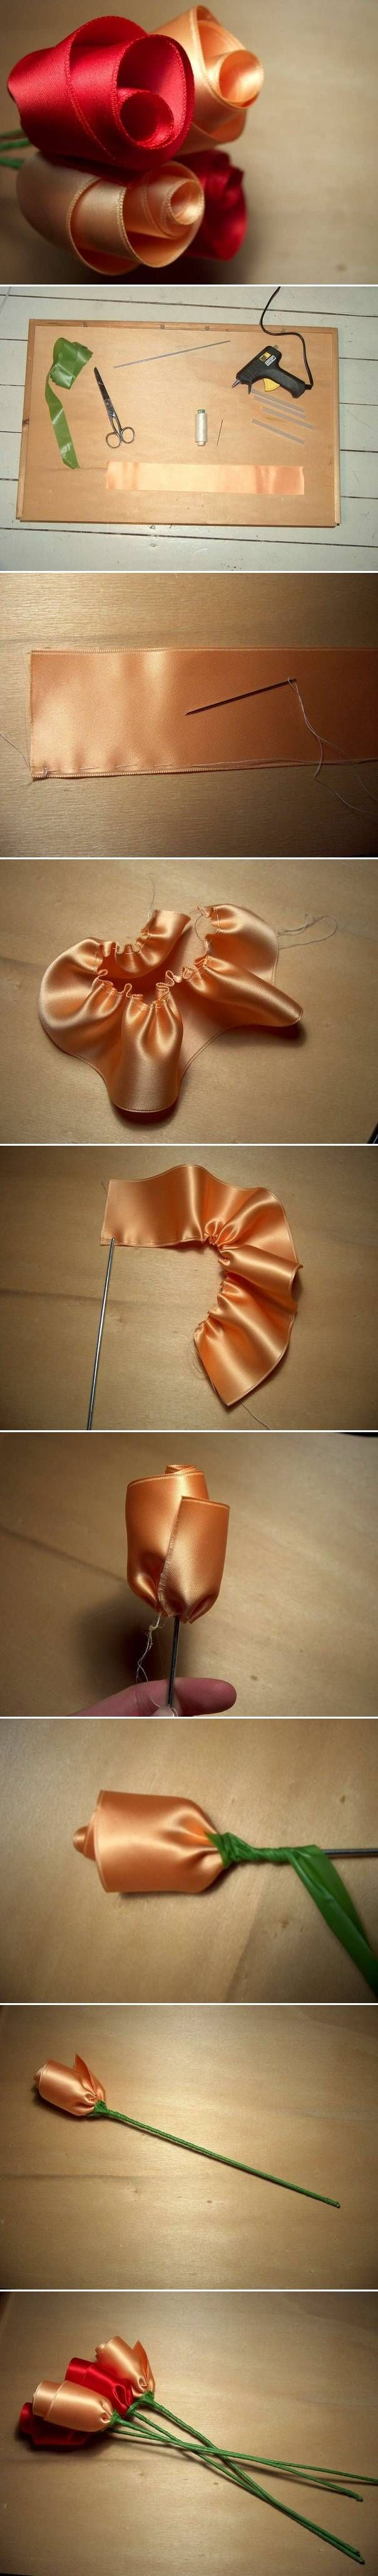 DIY Easy Satin Ribbon Roses | iCreativeIdeas.com LIKE Us on Facebook ==> https://www.facebook.com/icreativeideas